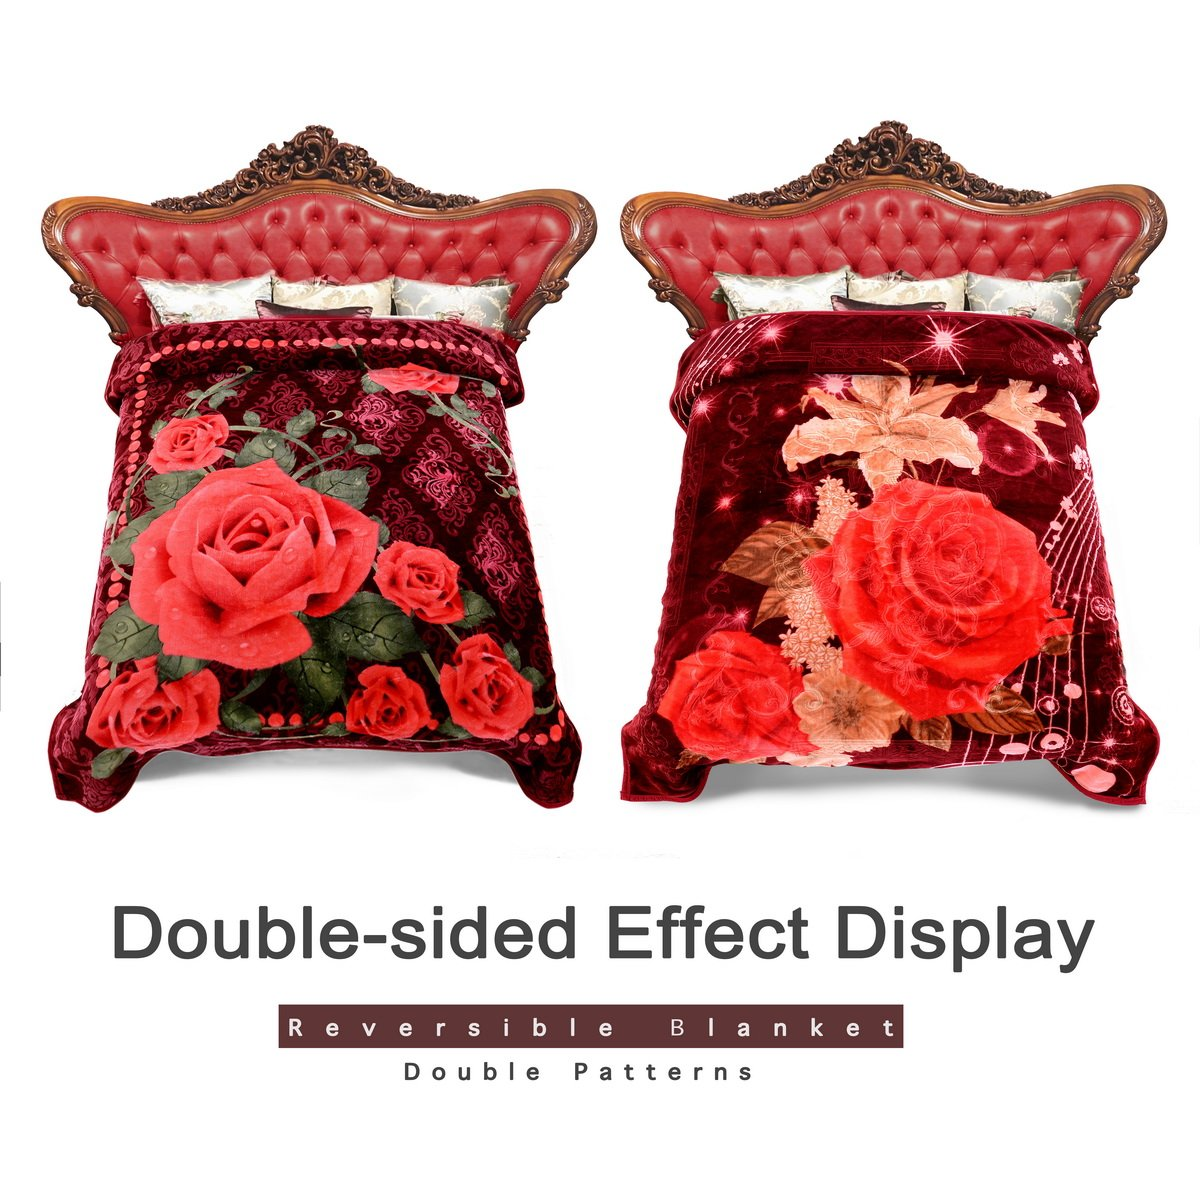 Jml Plush Fleece Blankets Queen Size 77'' x 87'', Heavy Blankets (520g/sm), Soft Warm, Korean Style, 2 Ply, 2 Sides Printed Raschel Bed Blanket, Red Rose